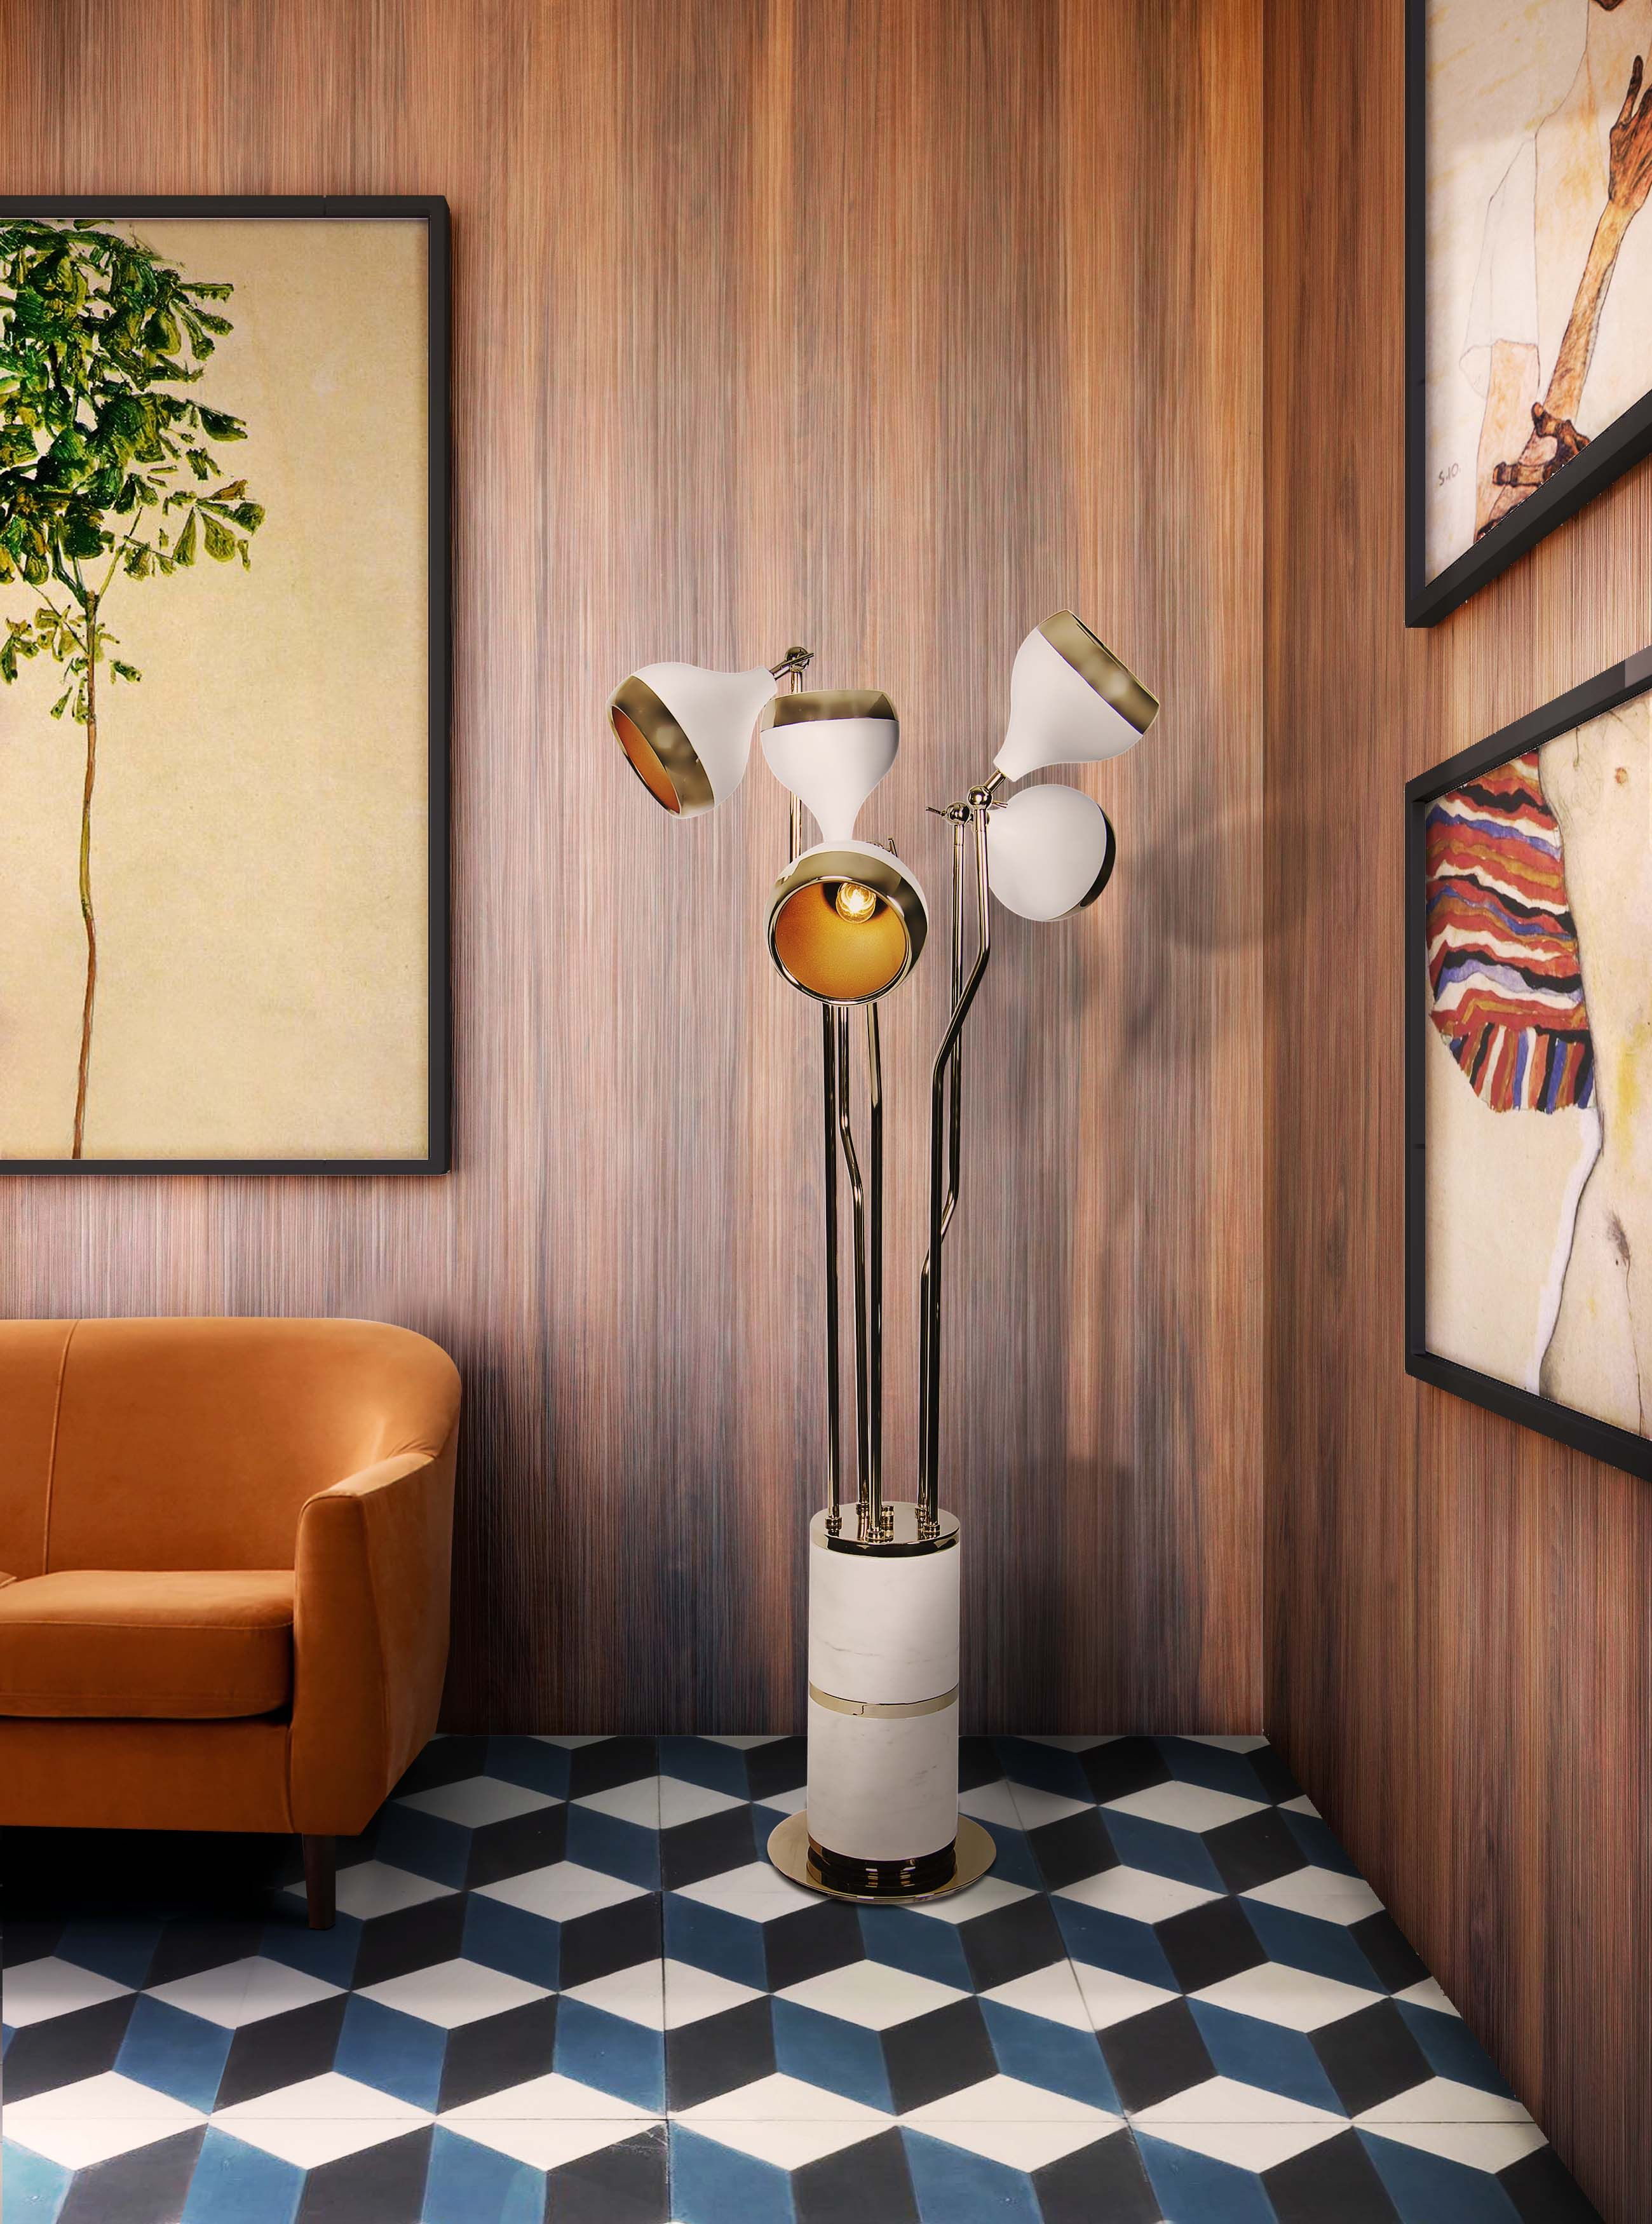 5 Retro Floor Lamps To Make Your Home As Glamourous As You Met Afbeeldingen Midcentury Modern Lampen Hotel Decor